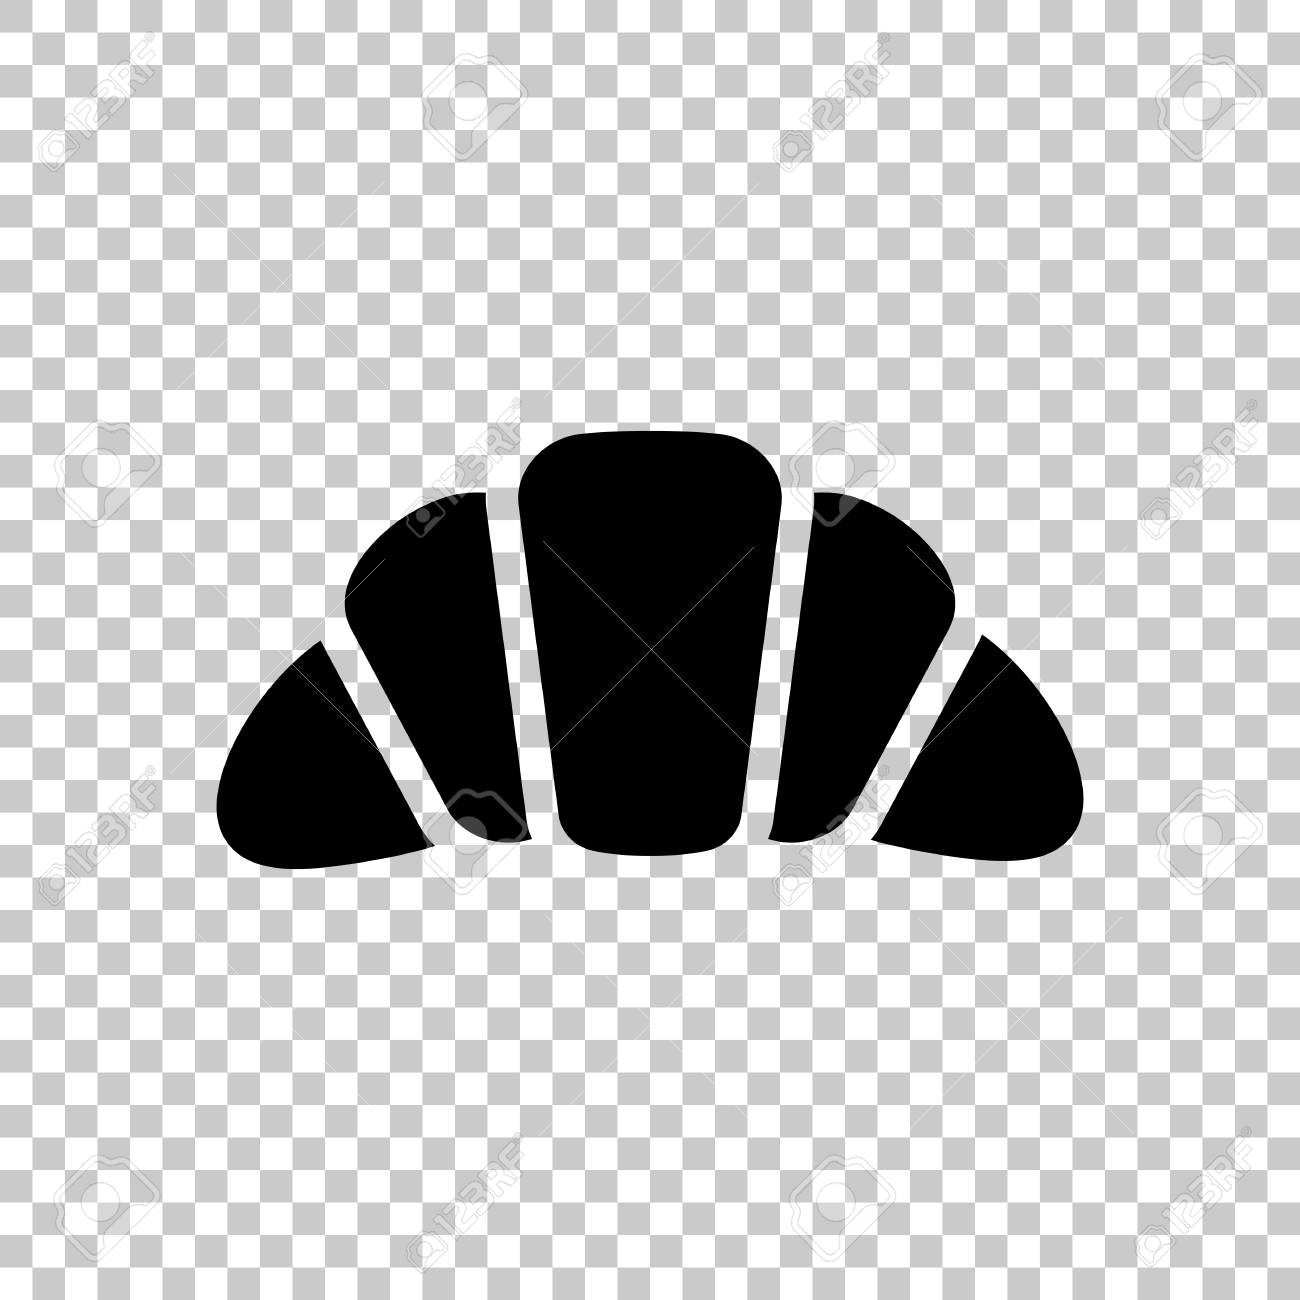 Silhouette of croissant  Icon of food  Black symbol on transparent